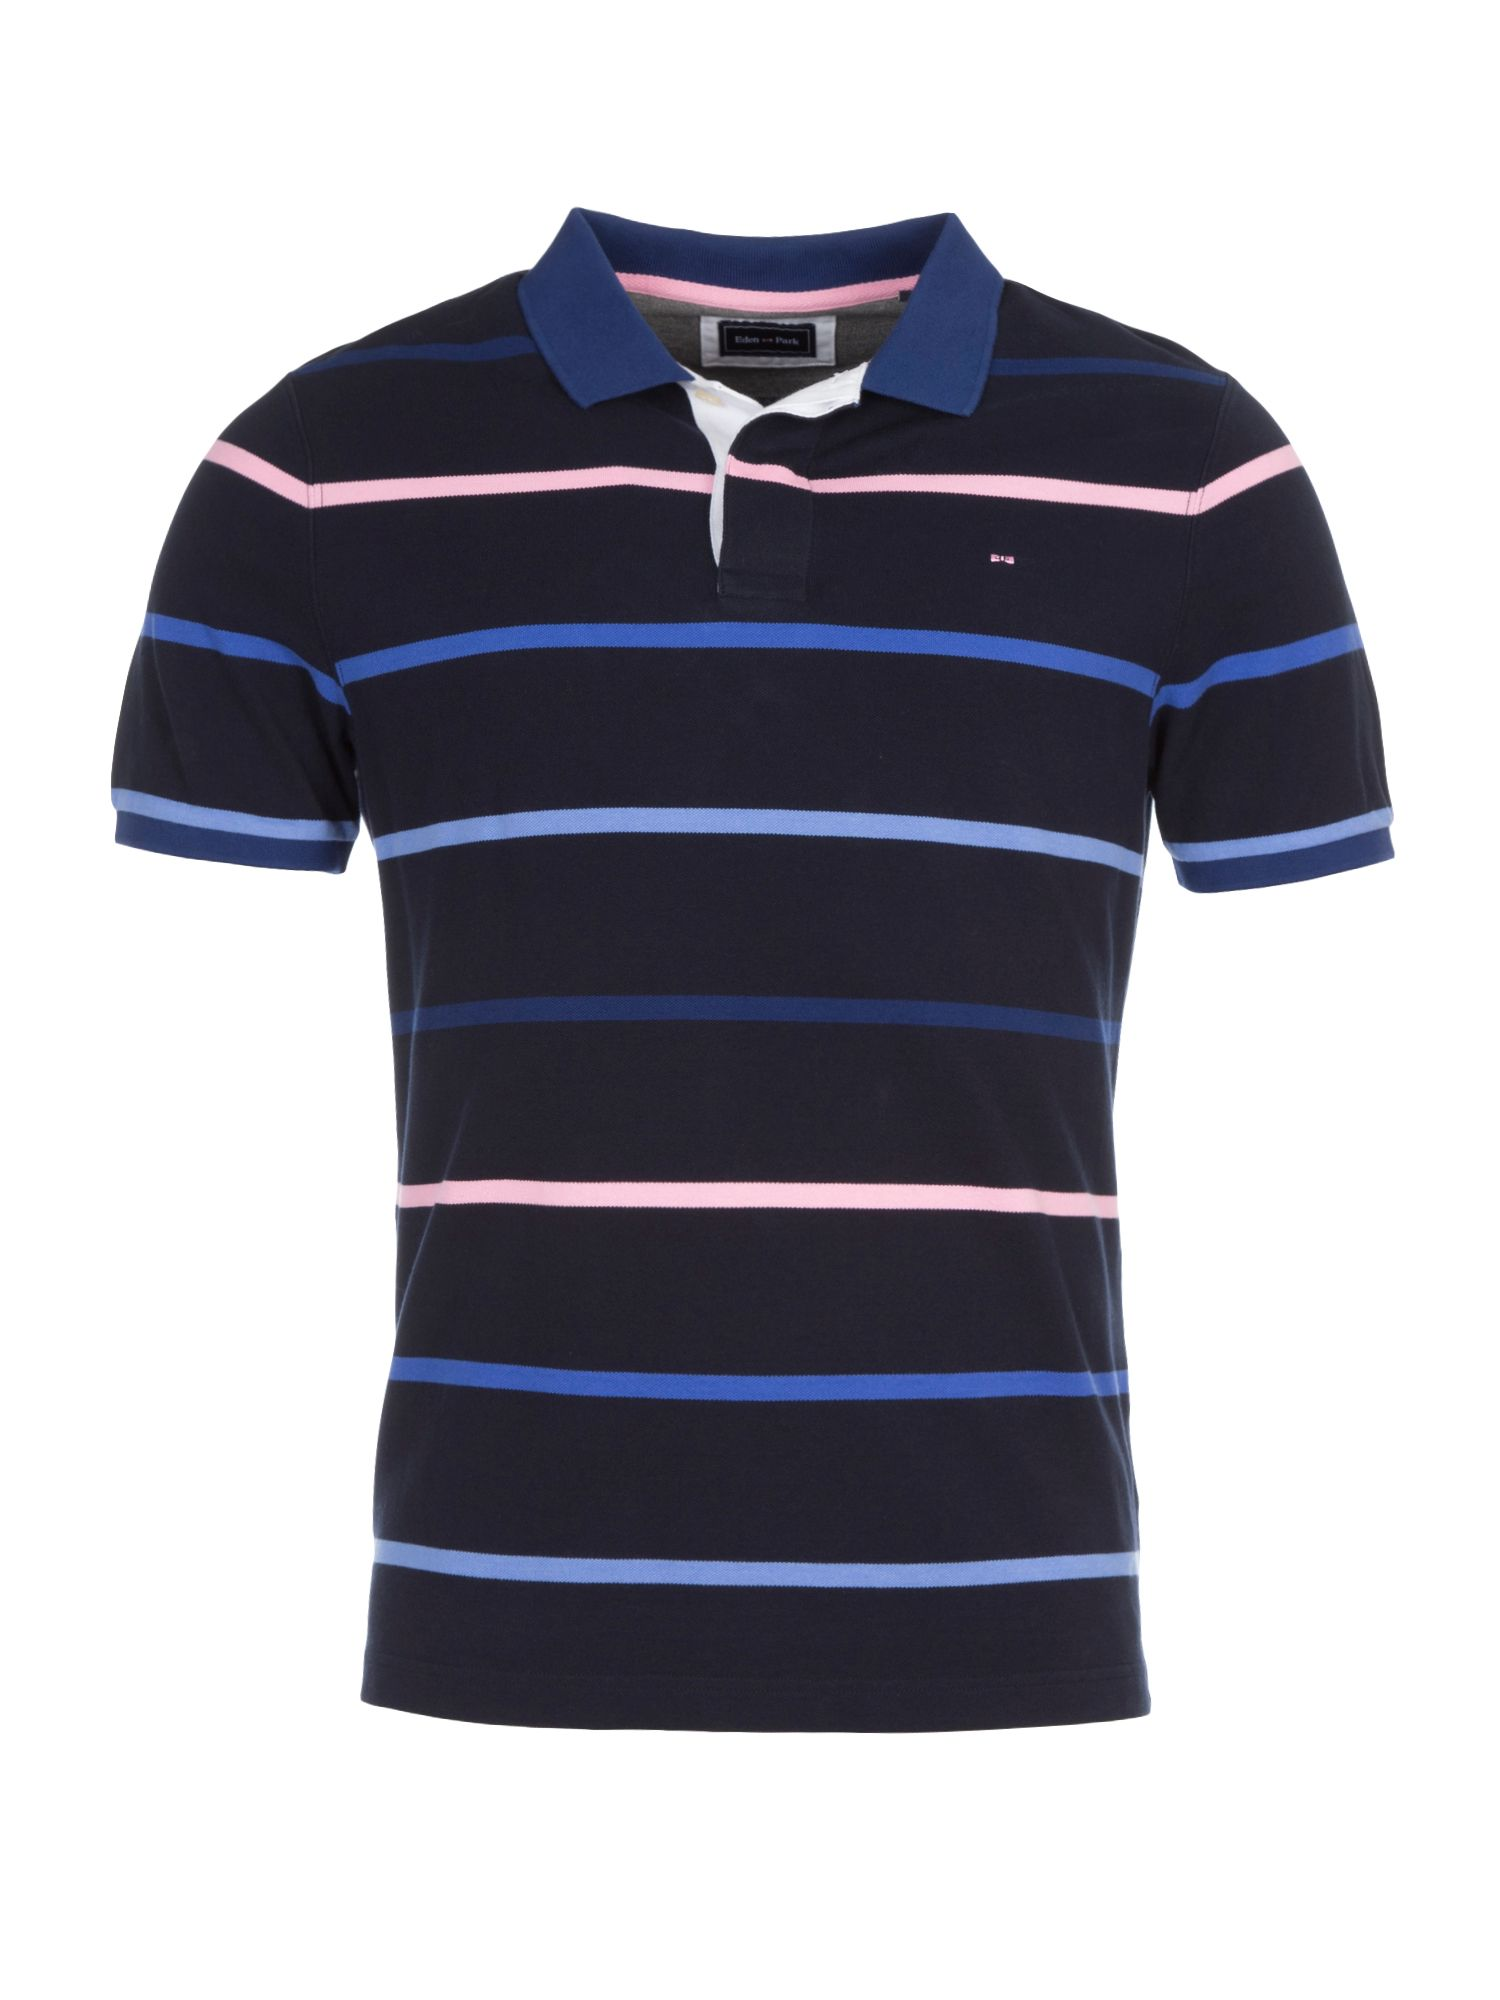 Men's Eden Park Striped Cotton Polo Shirt, Blue